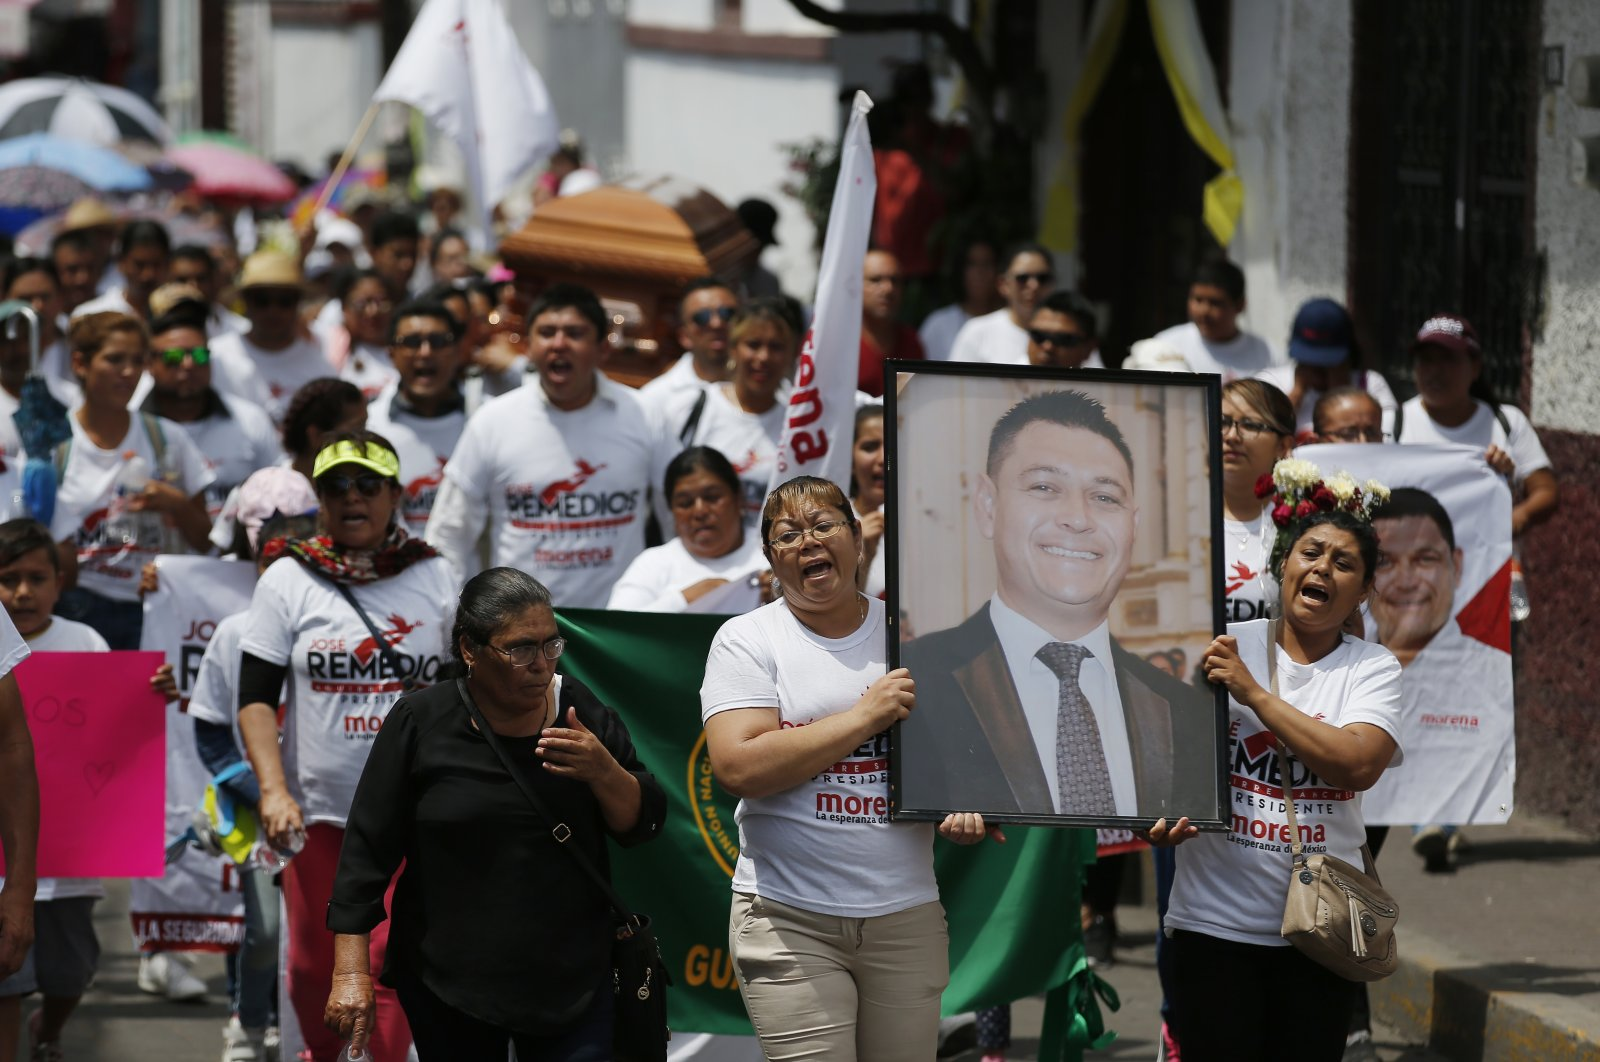 Women carry a photo of the late Jose Remedios Aguirre, a mayoral candidate who was shot in broad daylight two days prior, during his funeral procession in Apaseo El Alto, Mexico, May 13, 2018. (AP Photo)